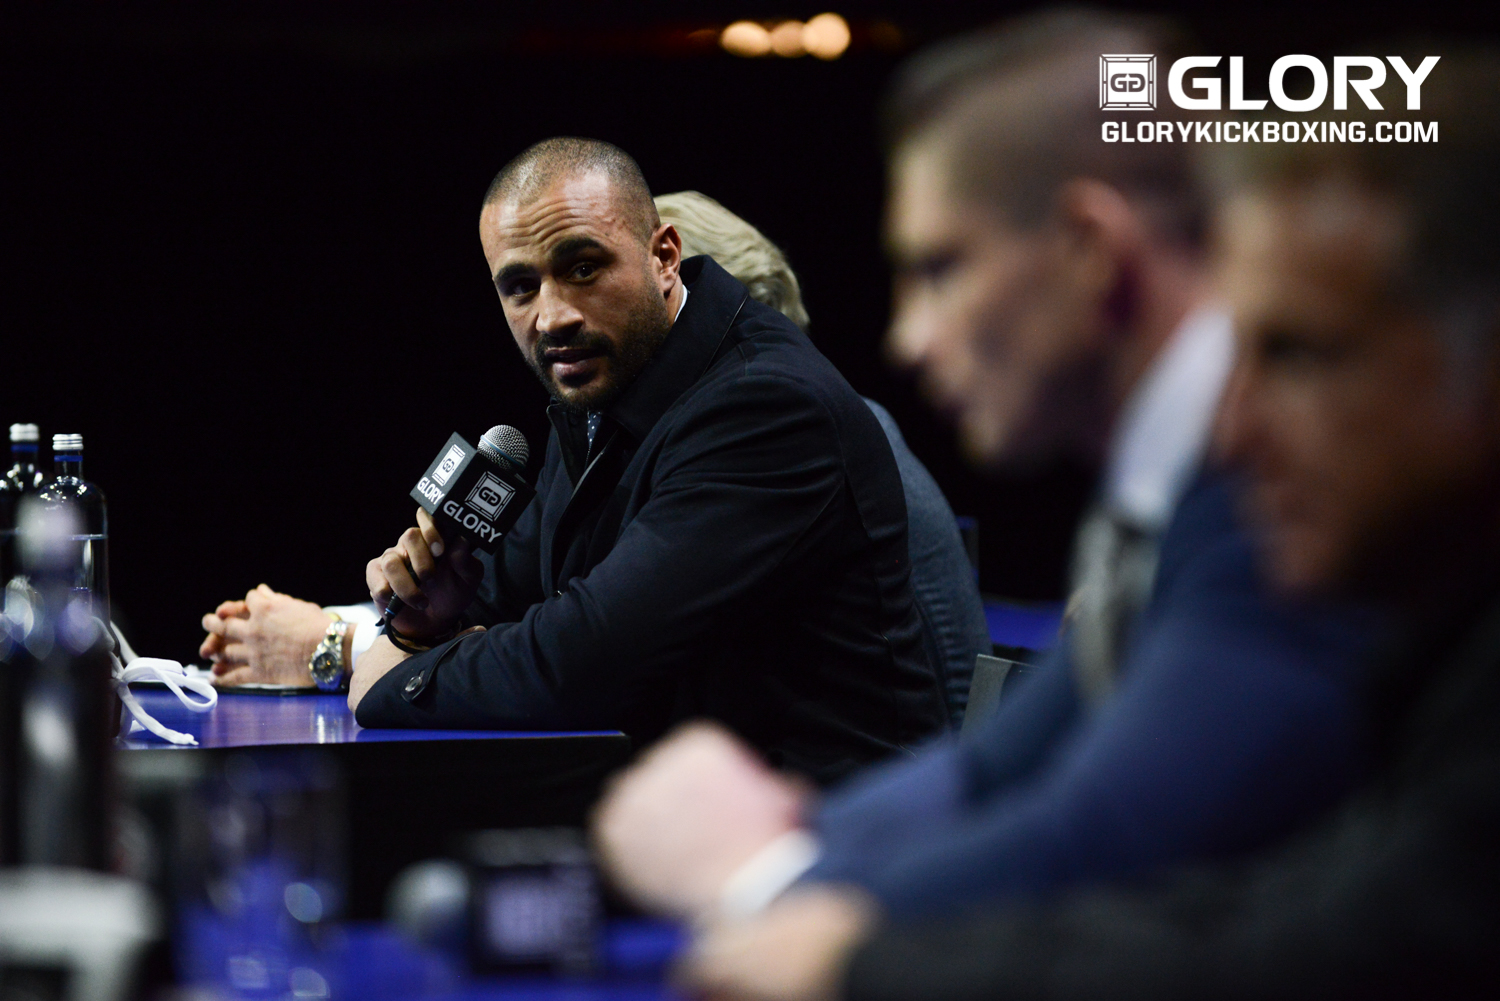 Badr Hari (Photo Credit: James Law Photography/GLORY)